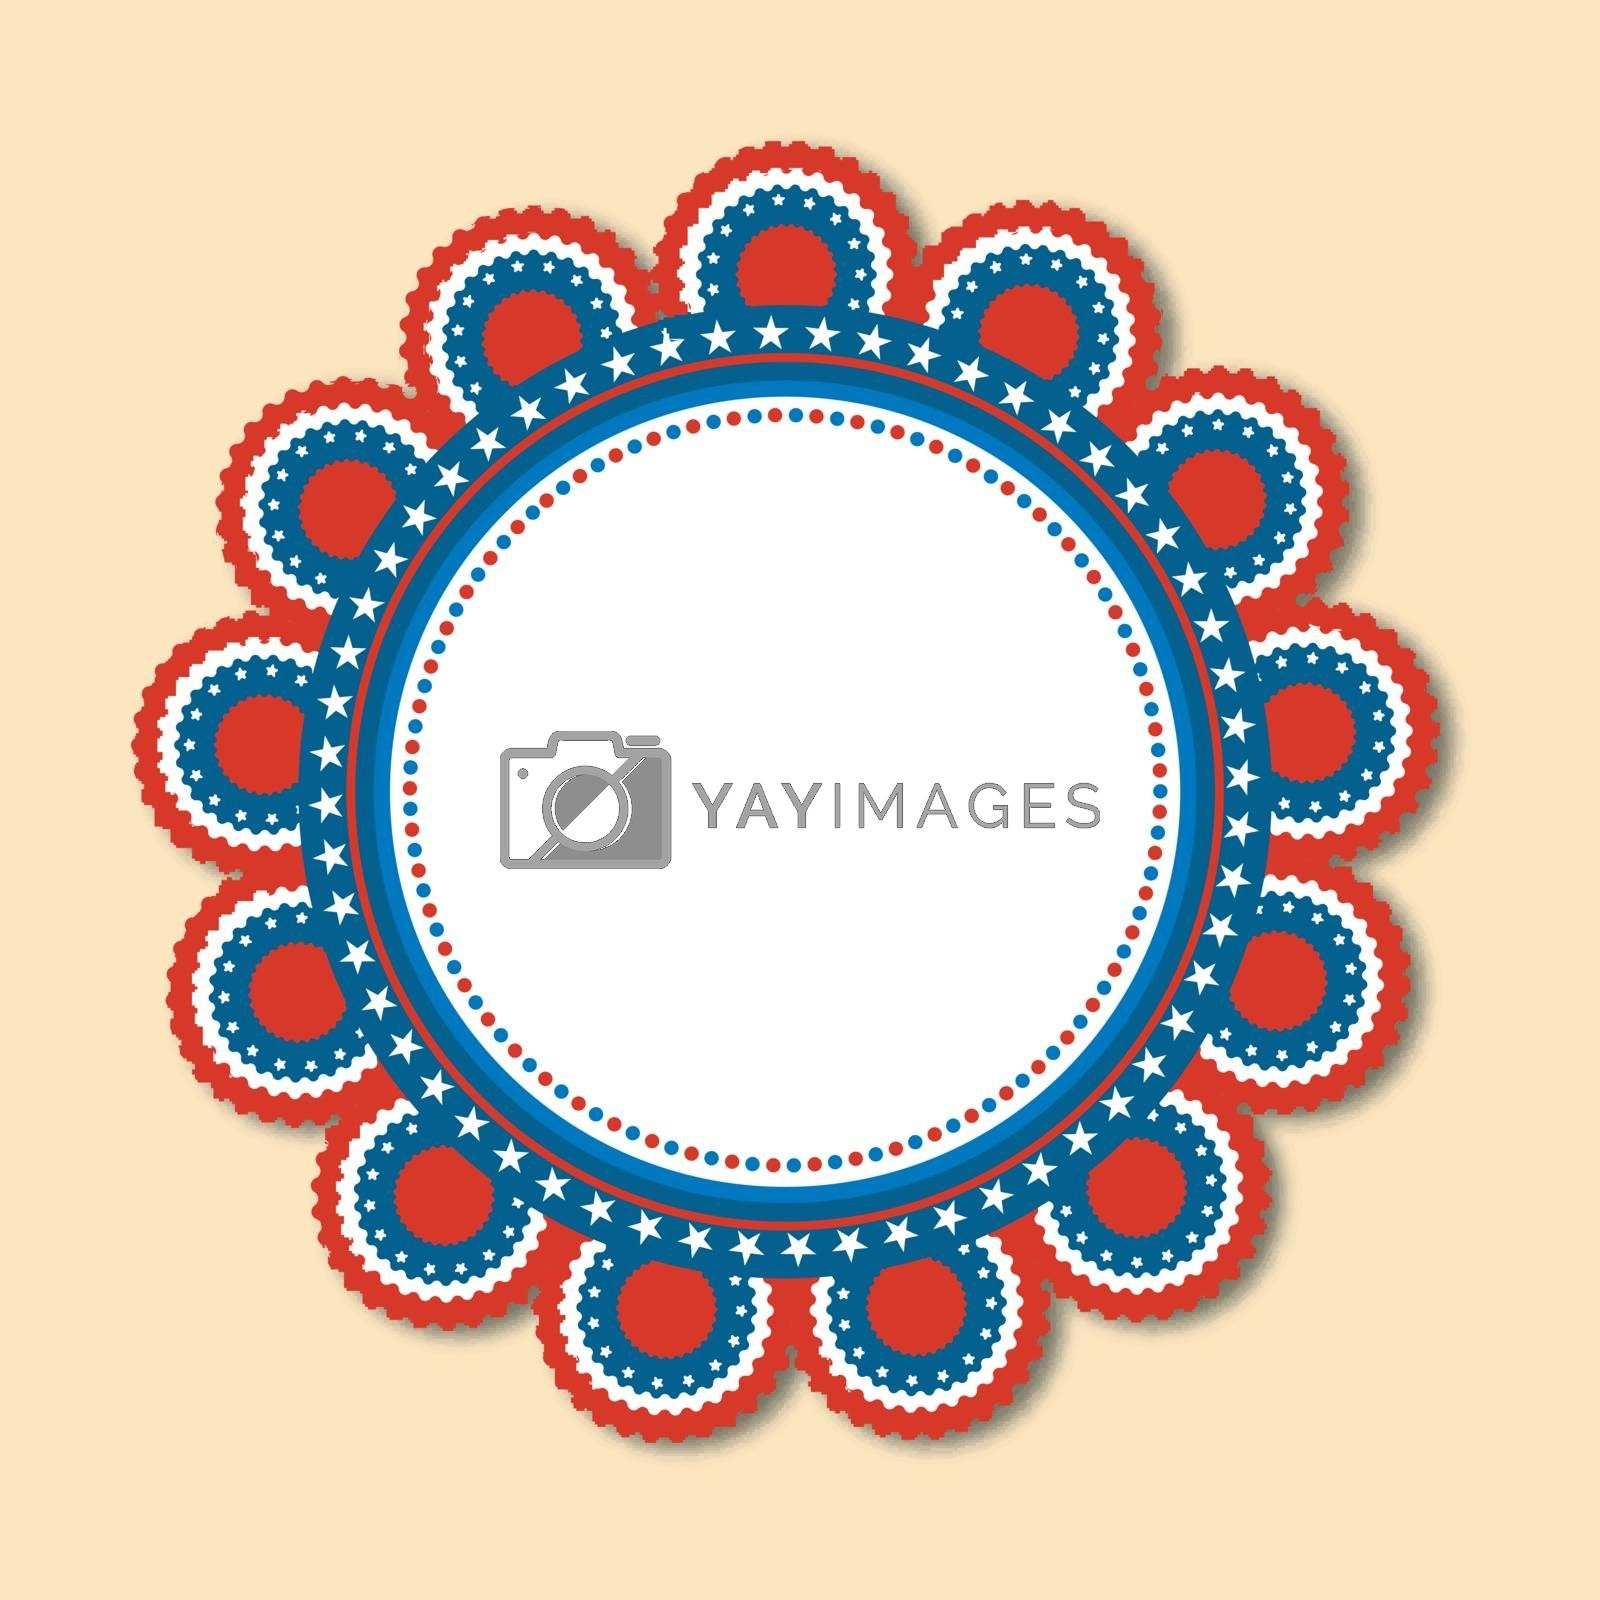 Creative badge design in American Flag colors for 4th of July, Independence Day celebration.